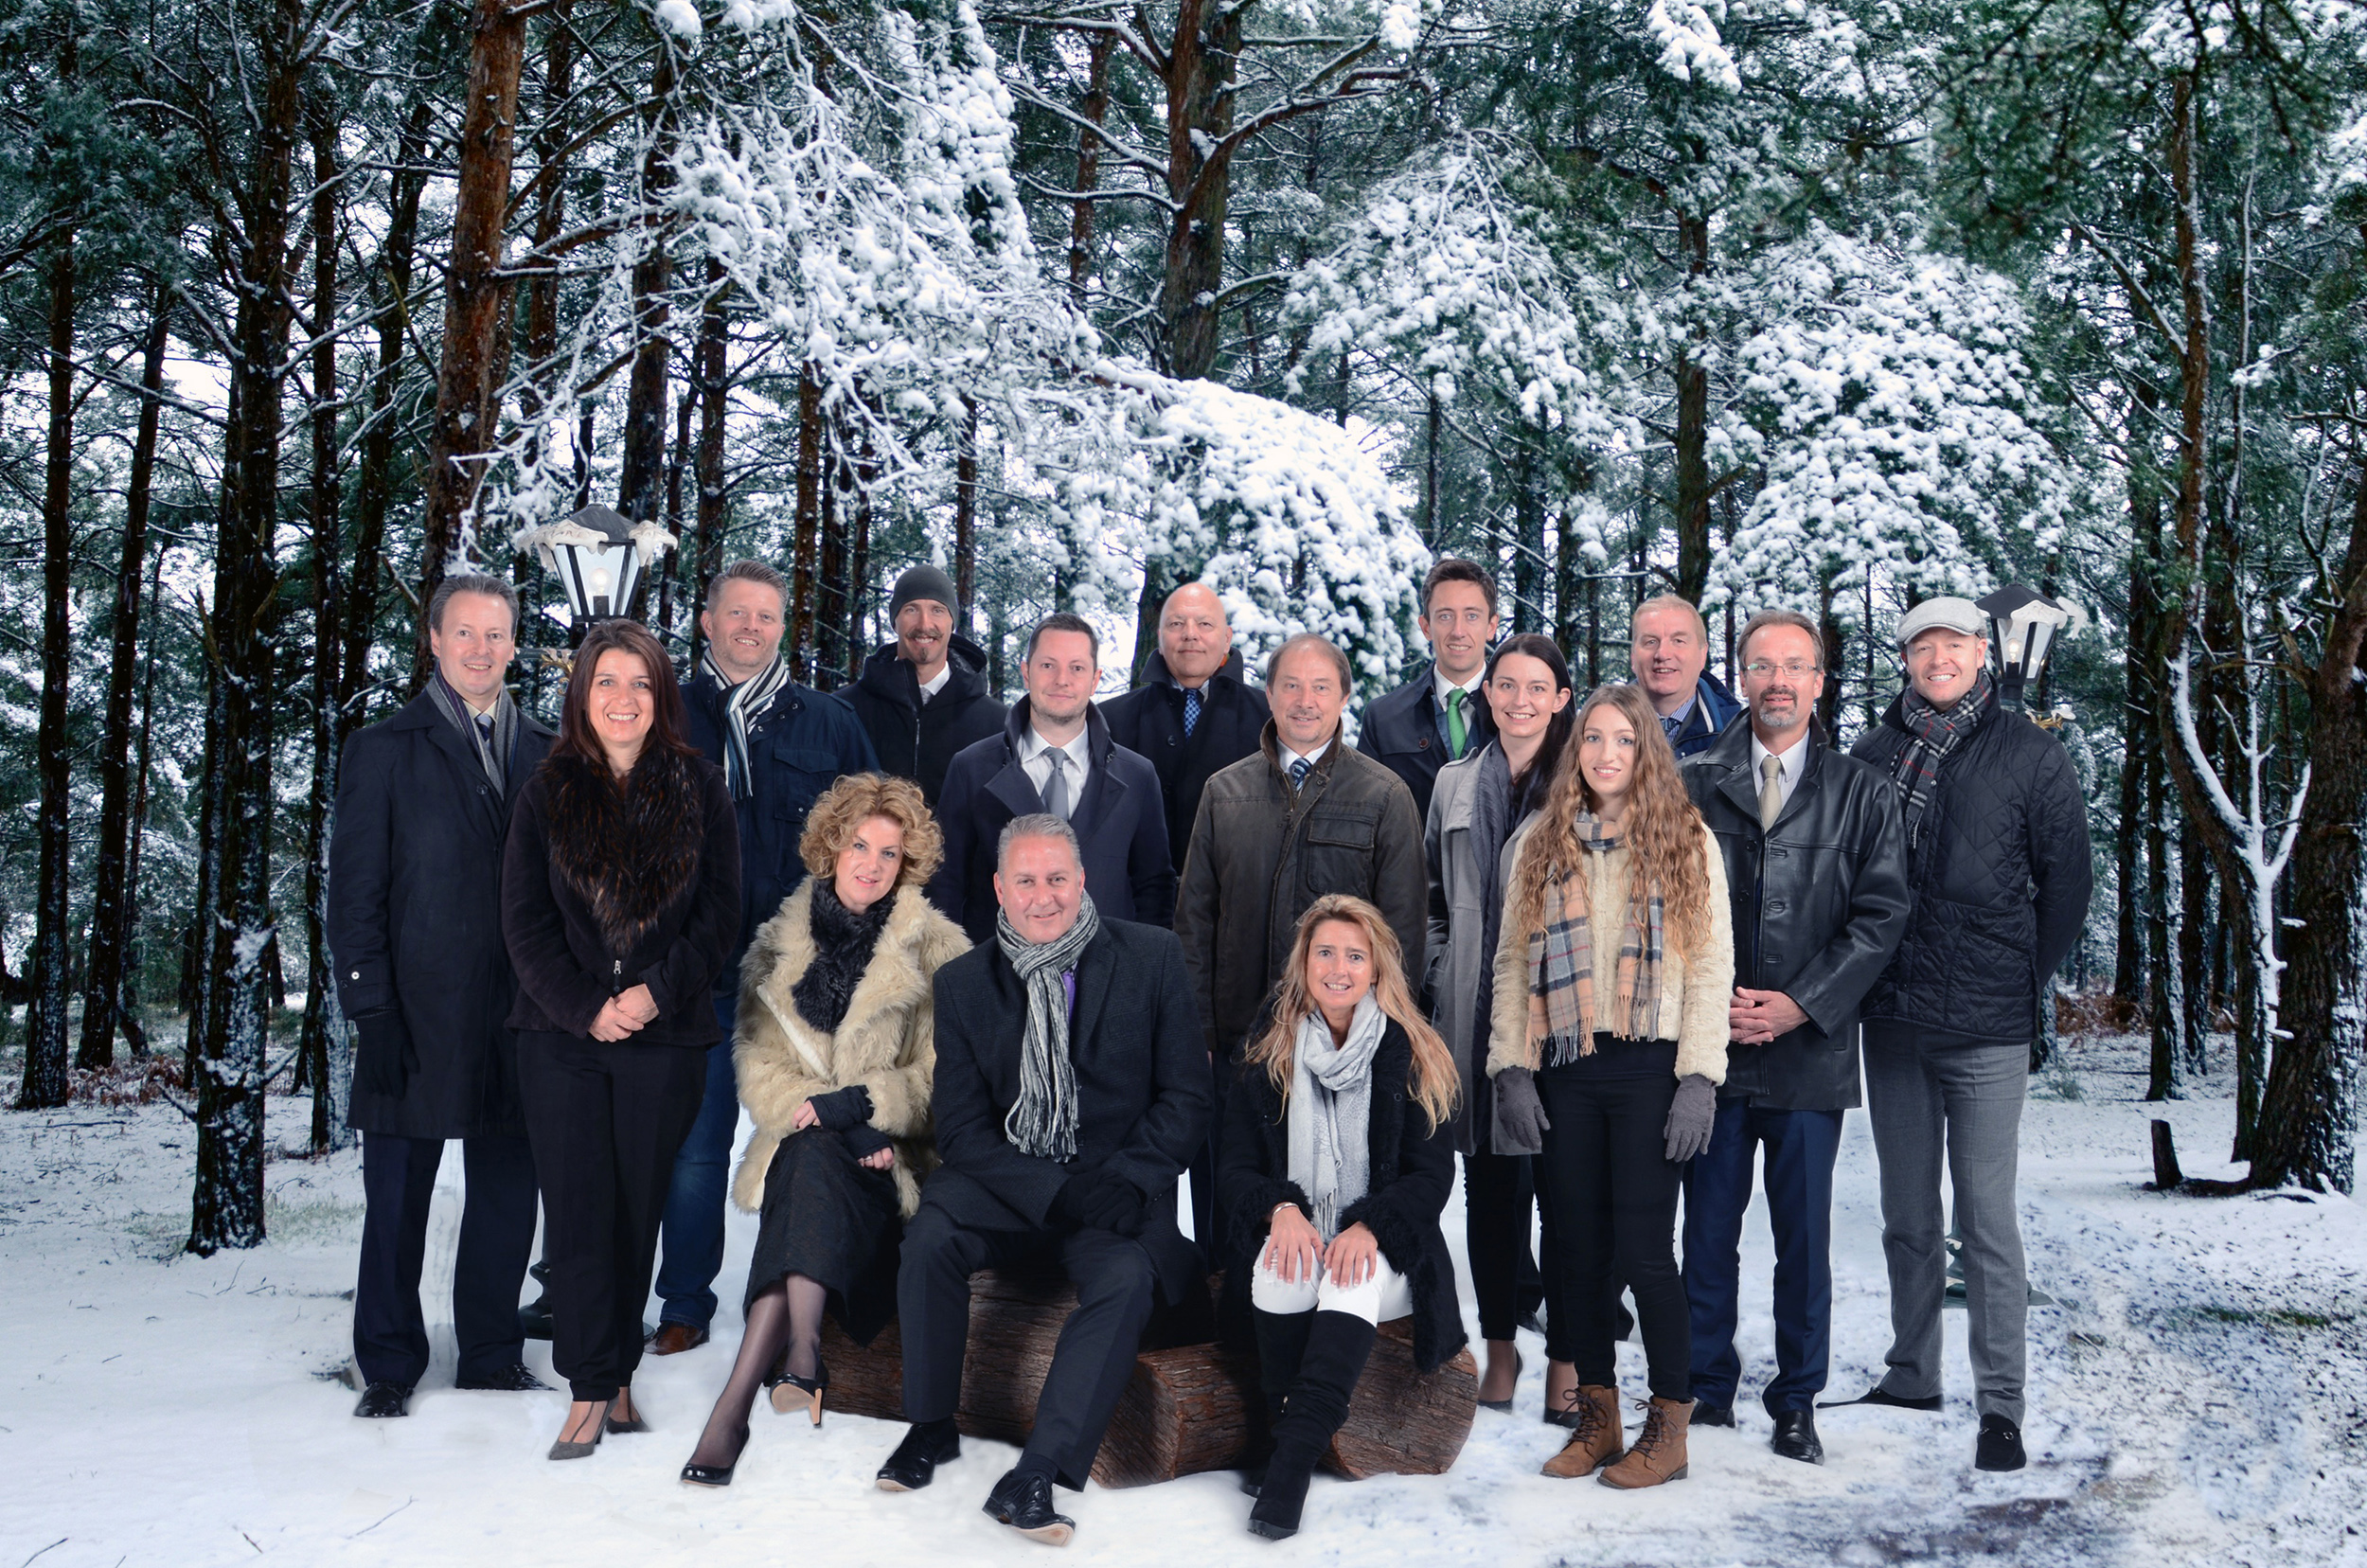 Sponsors gather to launch the magical Ice Kingdom themed 2016 Dorset Business Awards